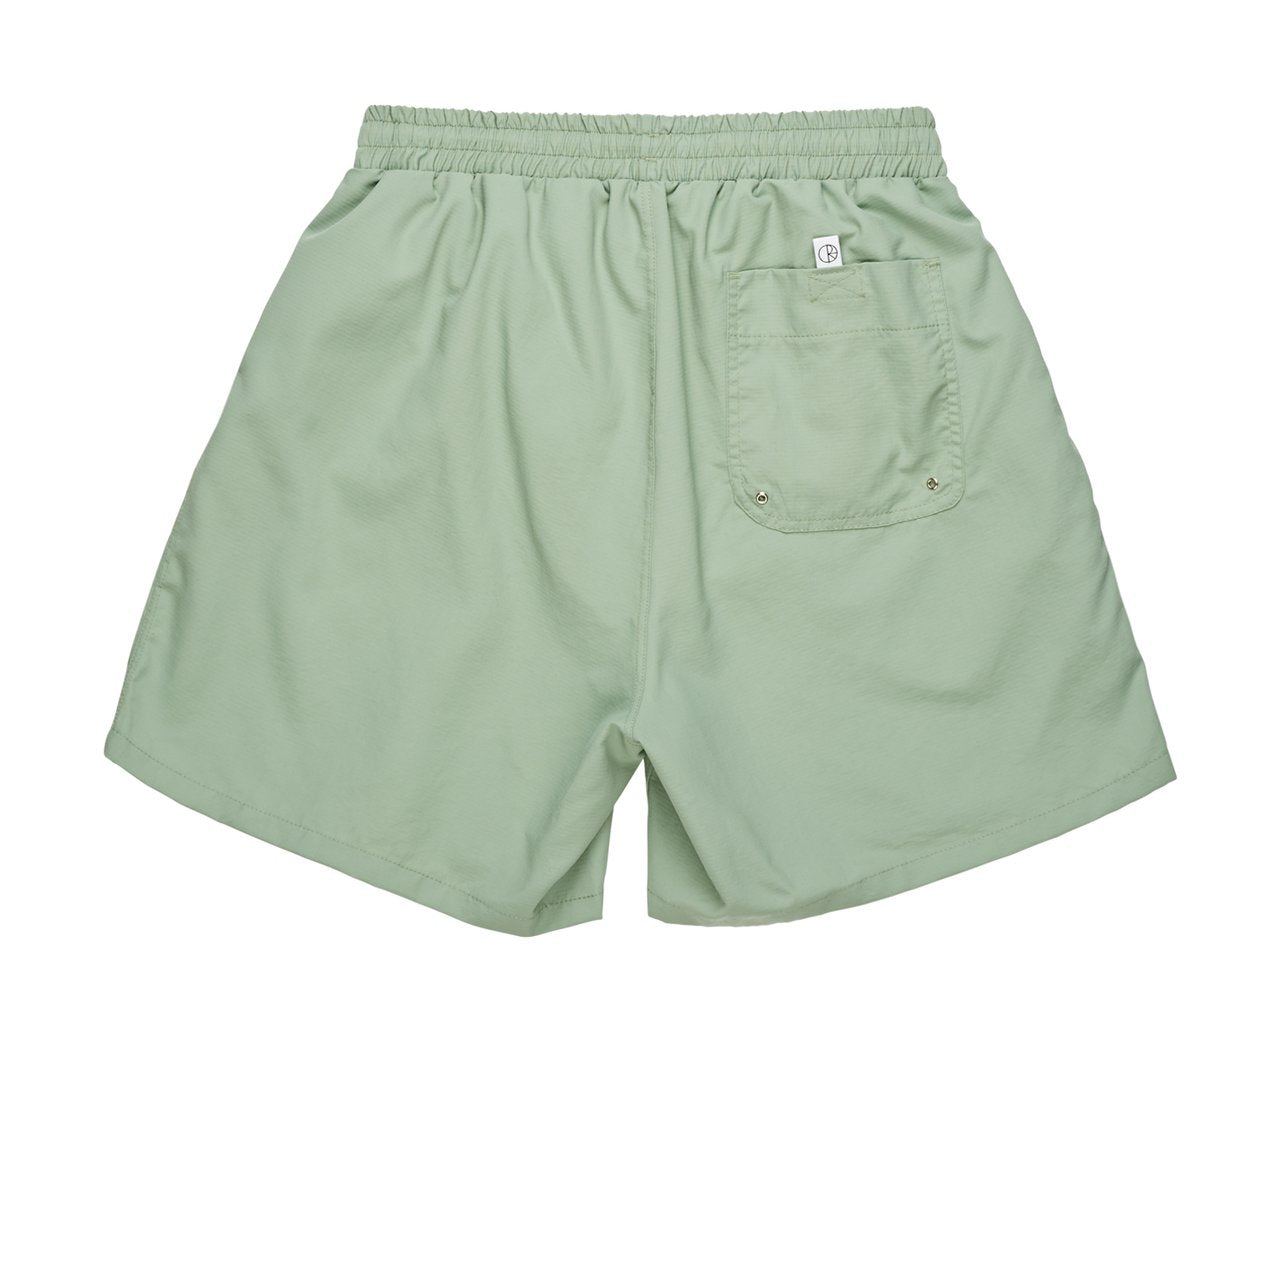 Swim Shorts Sea Foam Green